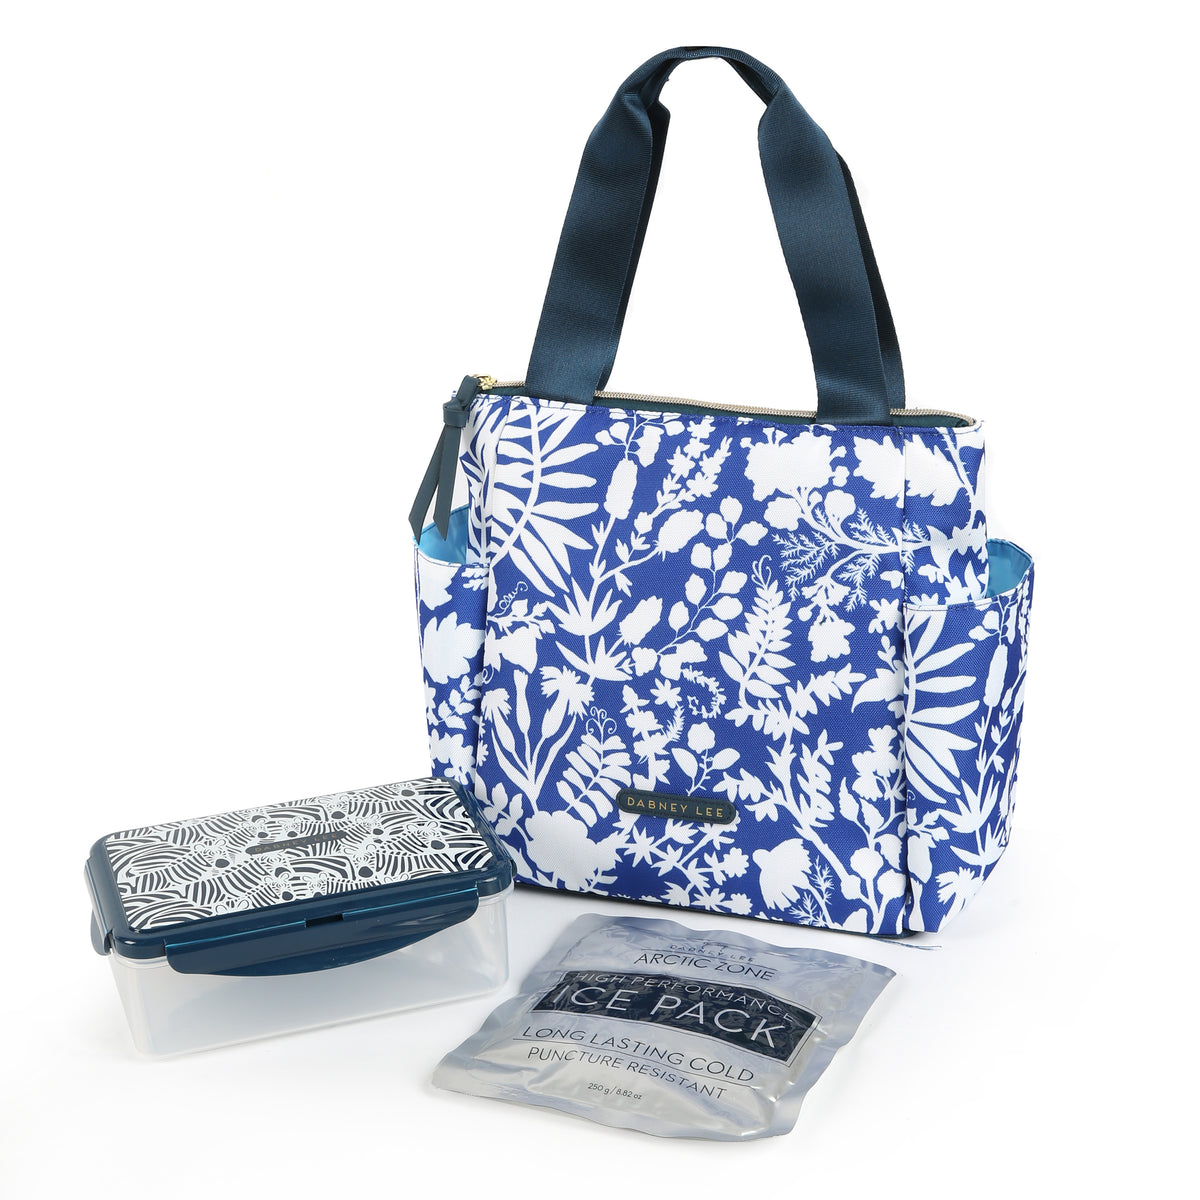 Arctic Zone® Dabney Lee Karina Tote - Summer Fling - Front, closed with container and ice pack